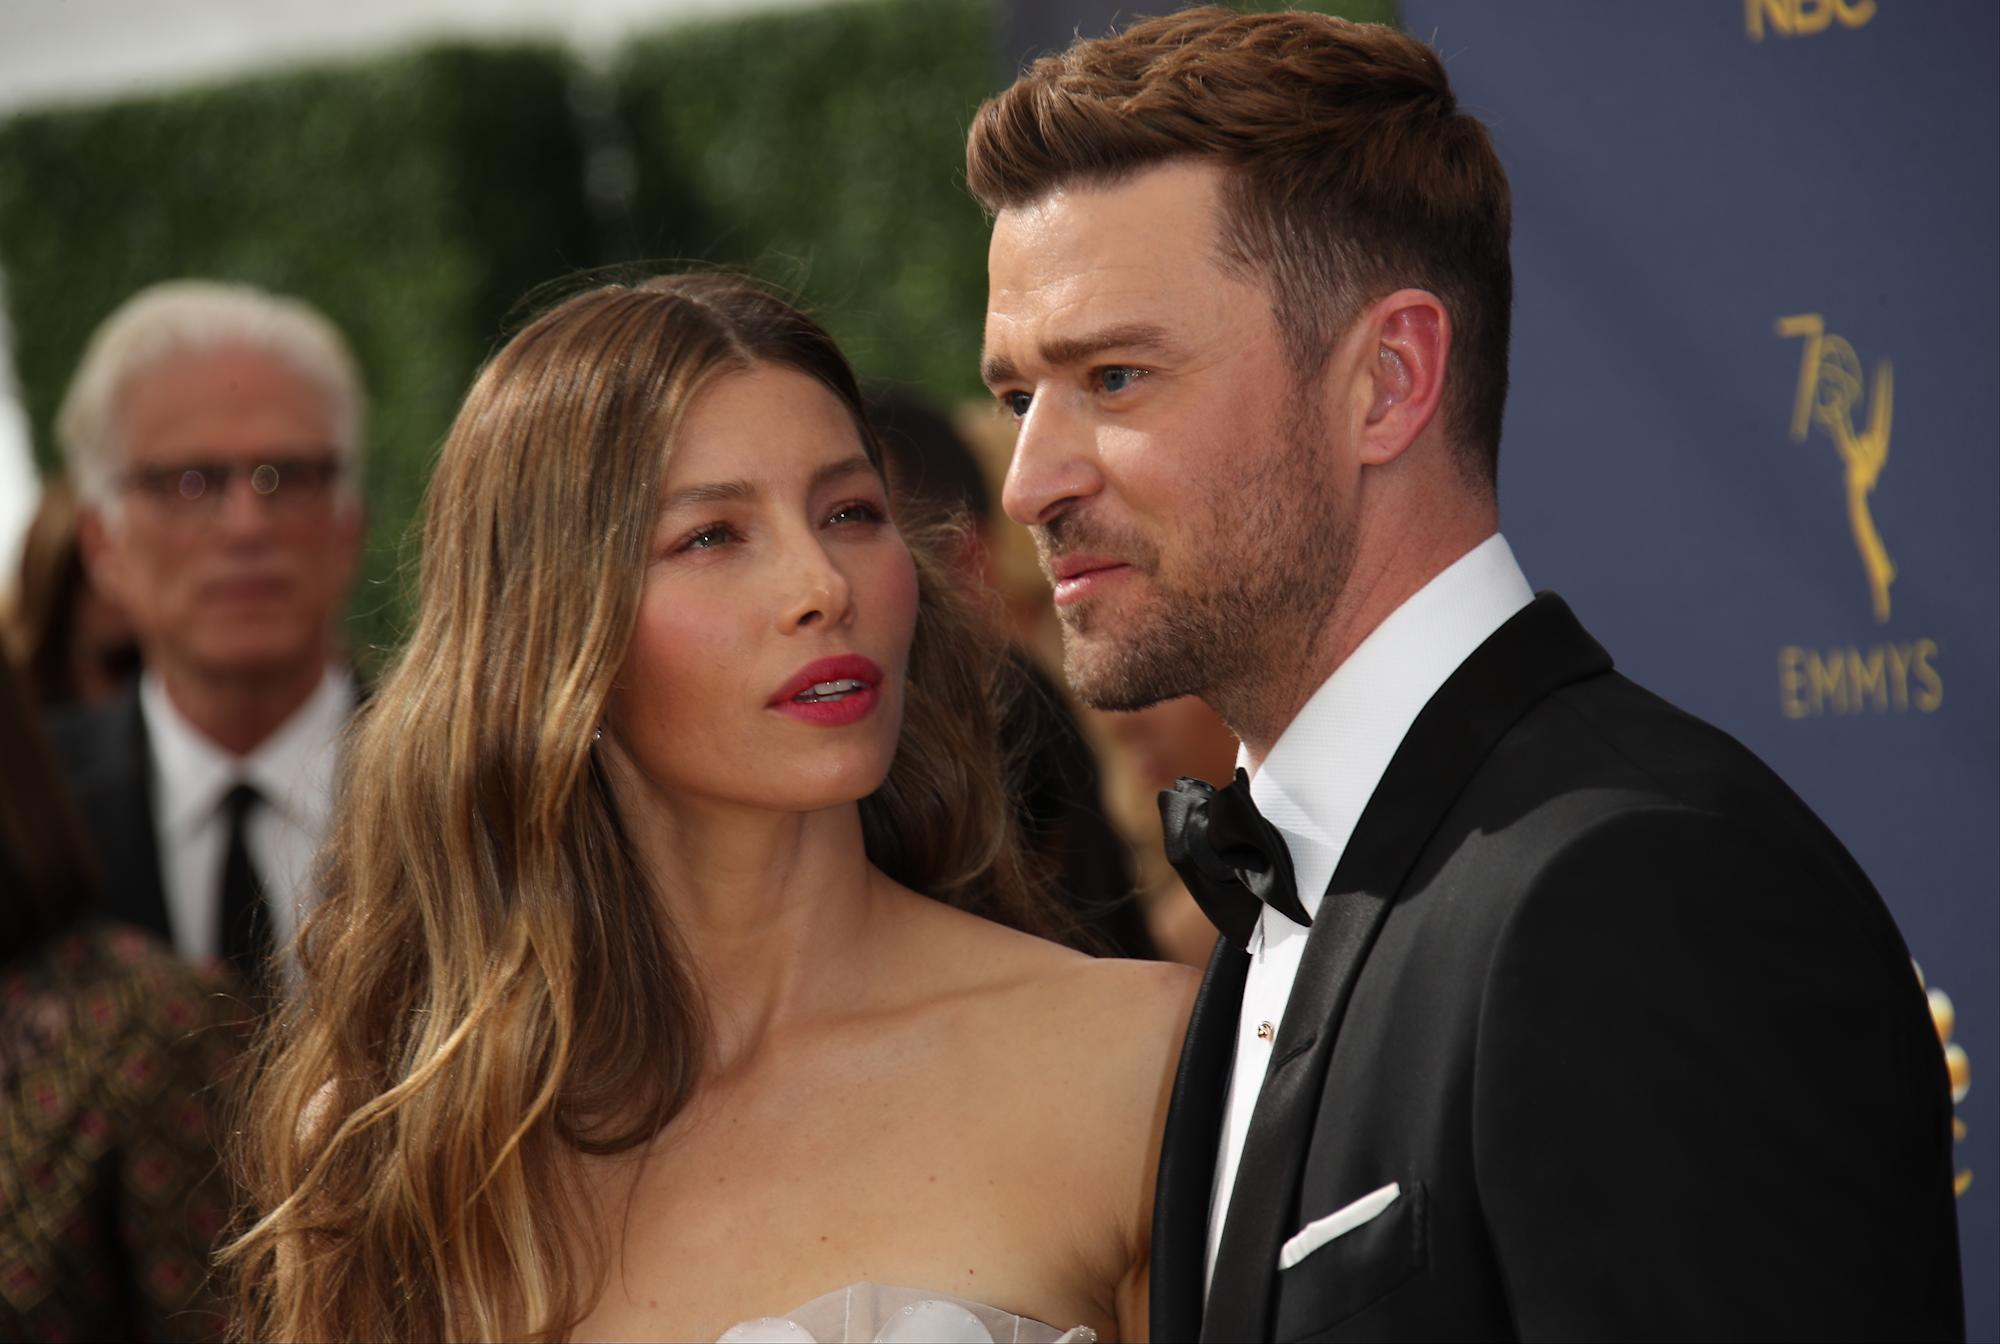 Jessica Biel pays tribute to Justin Timberlake on his 40th birthday: 'I honor you today, baby'